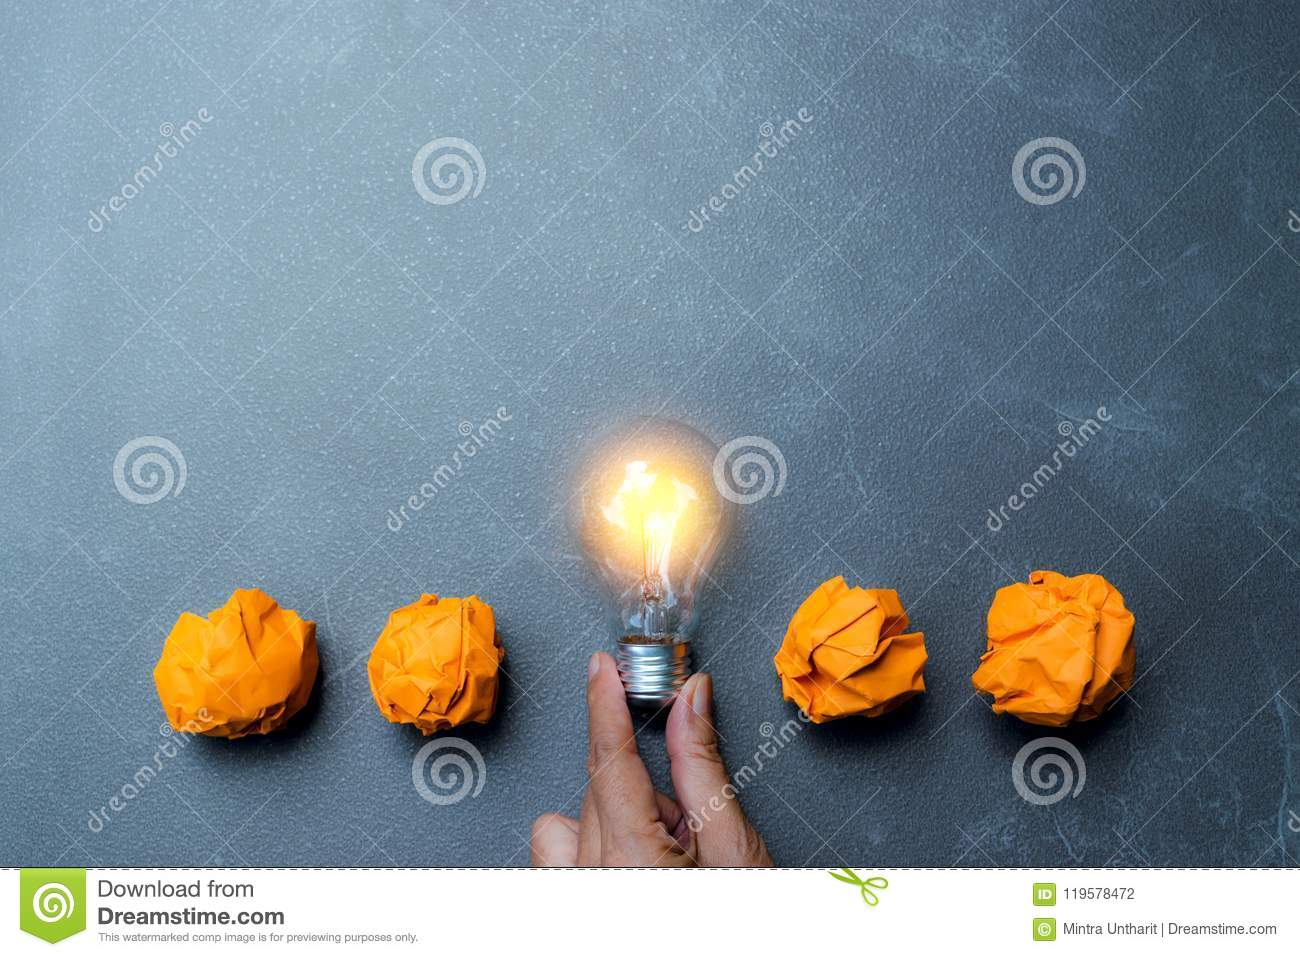 Hand holding light bulb put in the middle of orange papers it for idea,energy,solar concept.